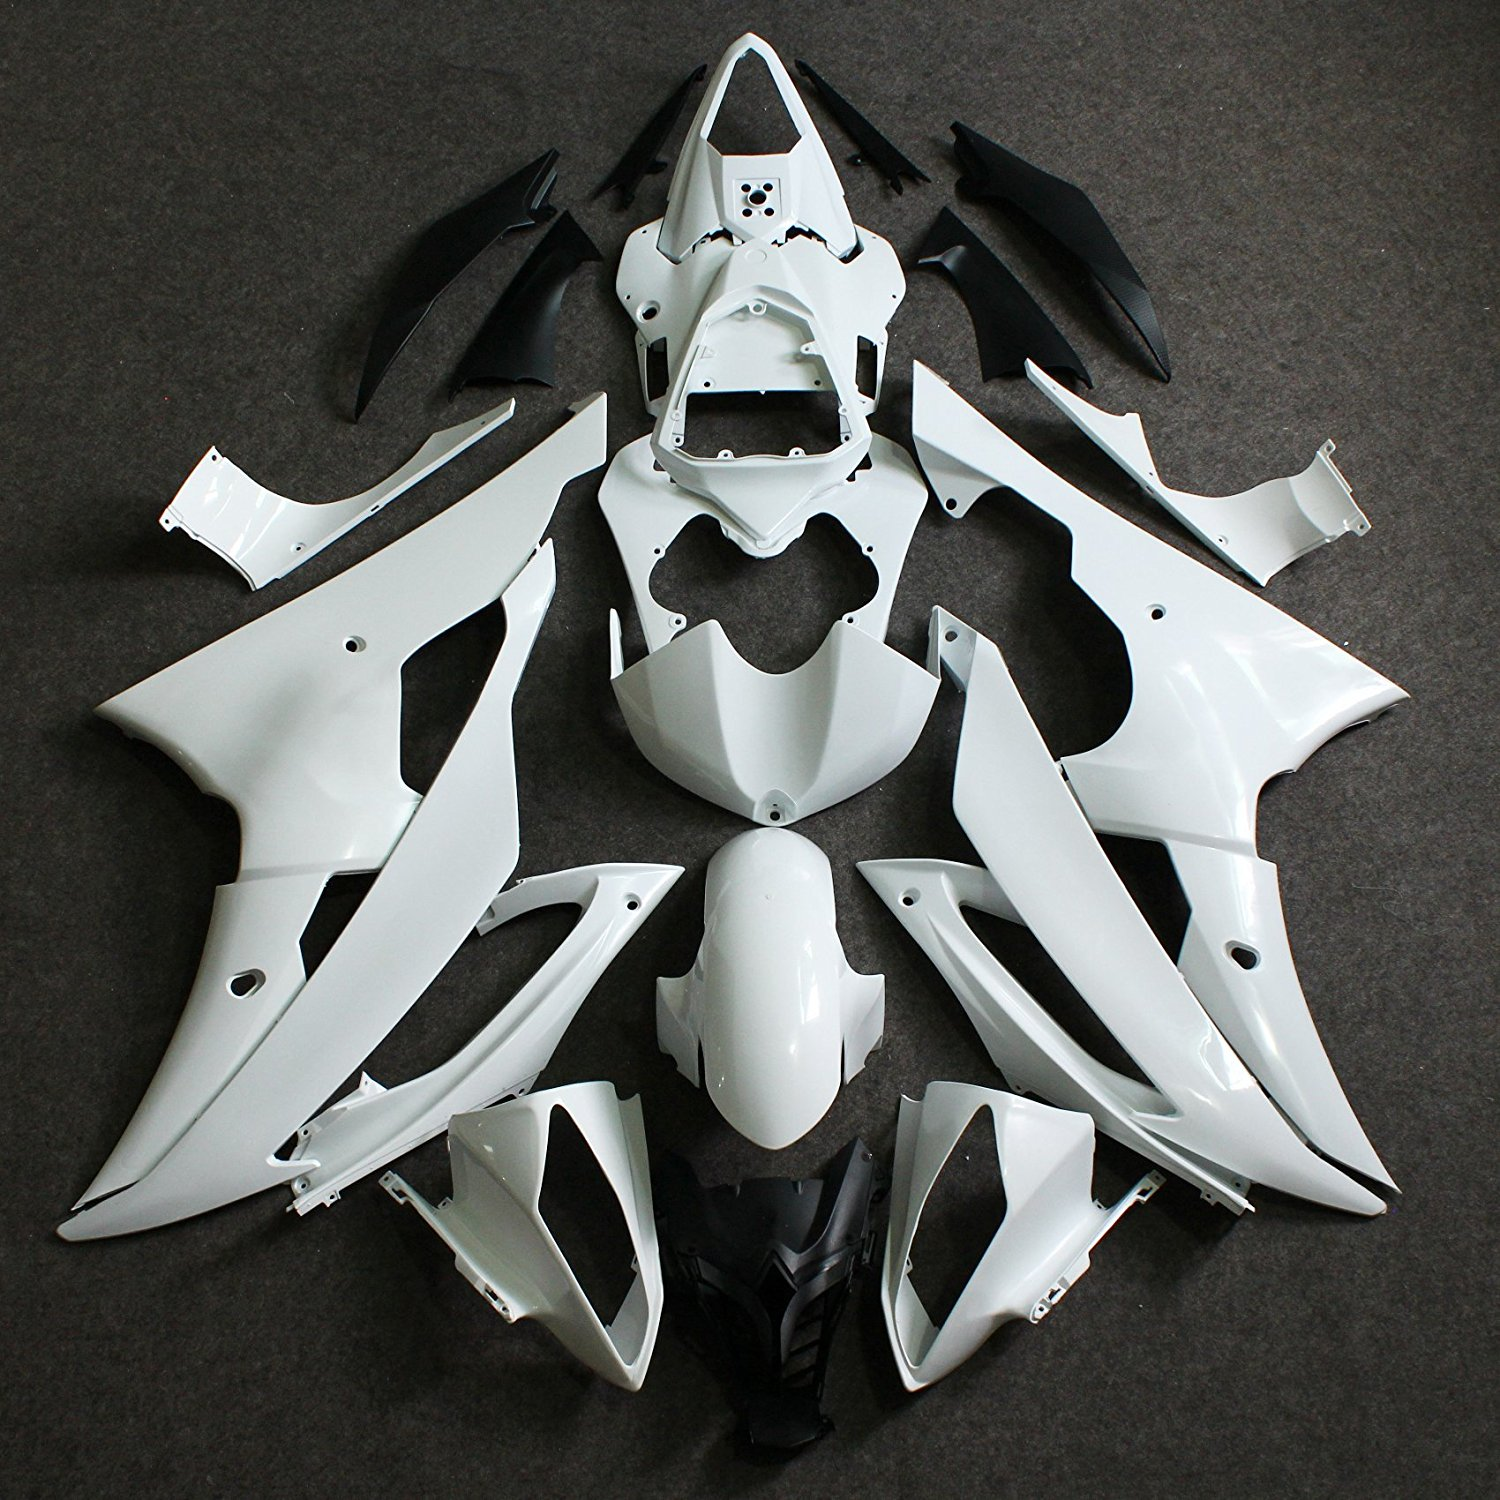 Motorbike Unpainted Injection Fairing Kit For Yamaha YZF R6 YZFR6 YZF R6 2008 2009 2010 2011